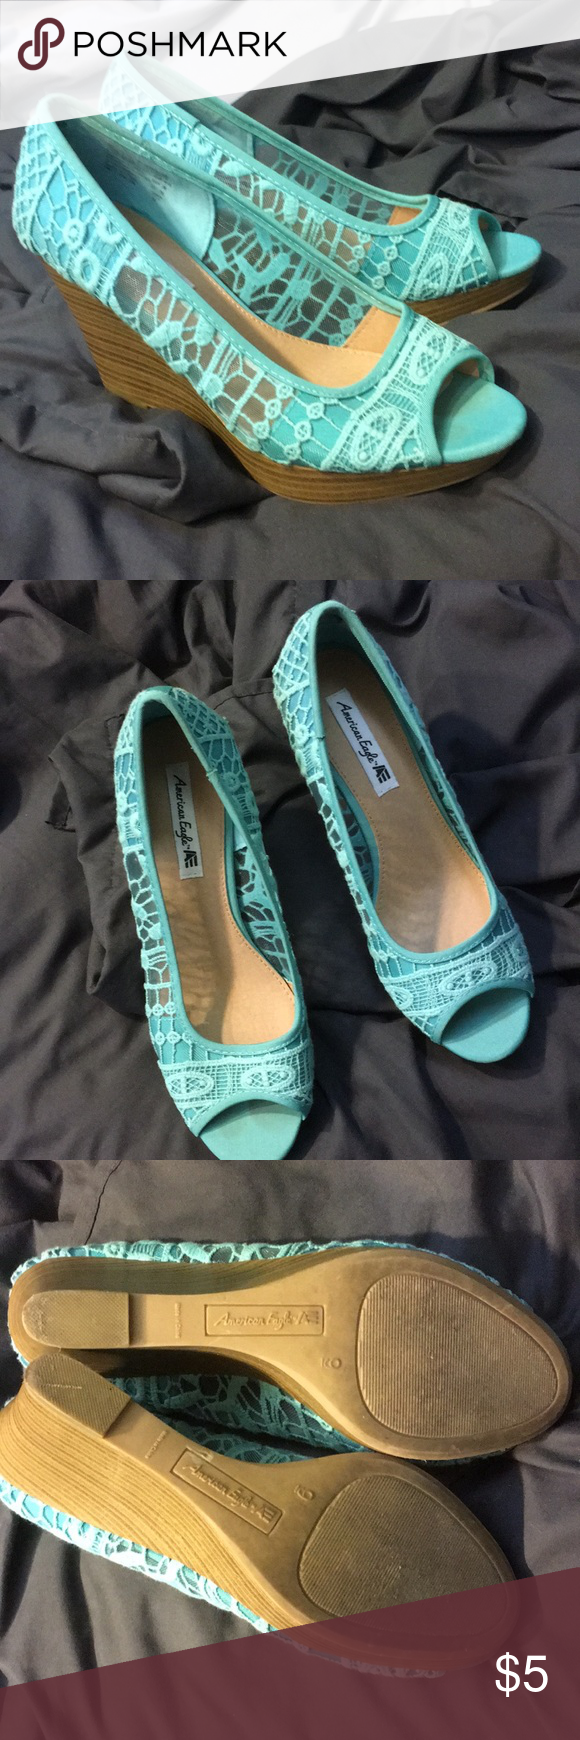 a25236336a78 Blue lace wedge Size 9 worn a few hours for grad party. American Eagle By Payless  Shoes Wedges